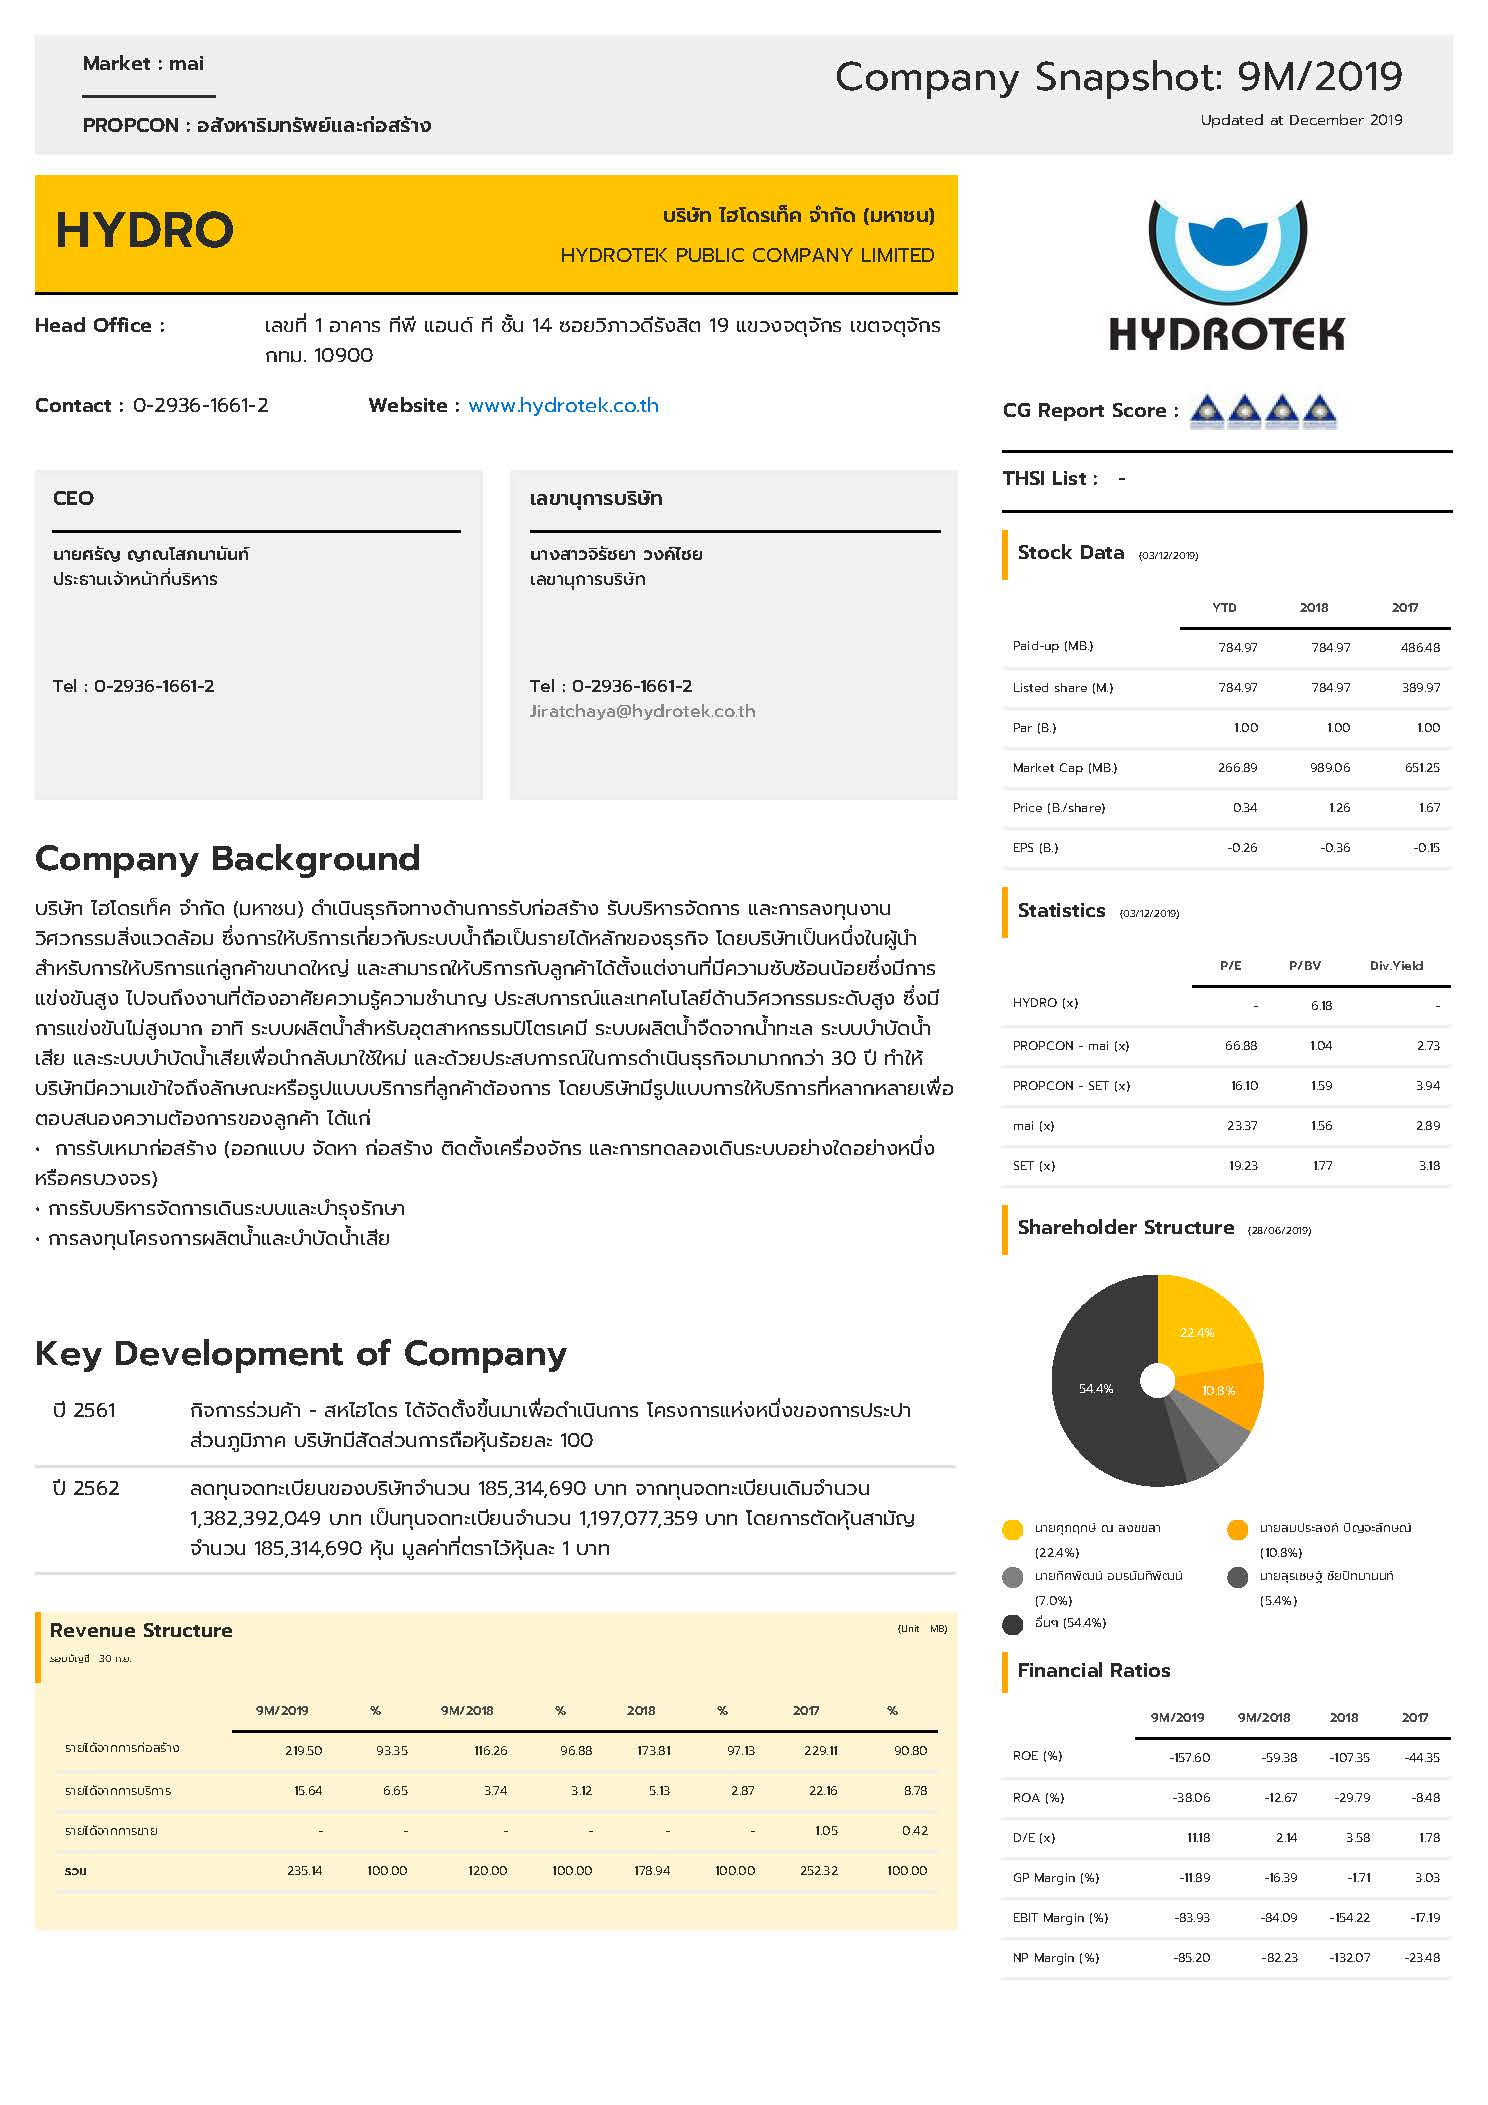 HYDRO-9M2019-T_Page_1